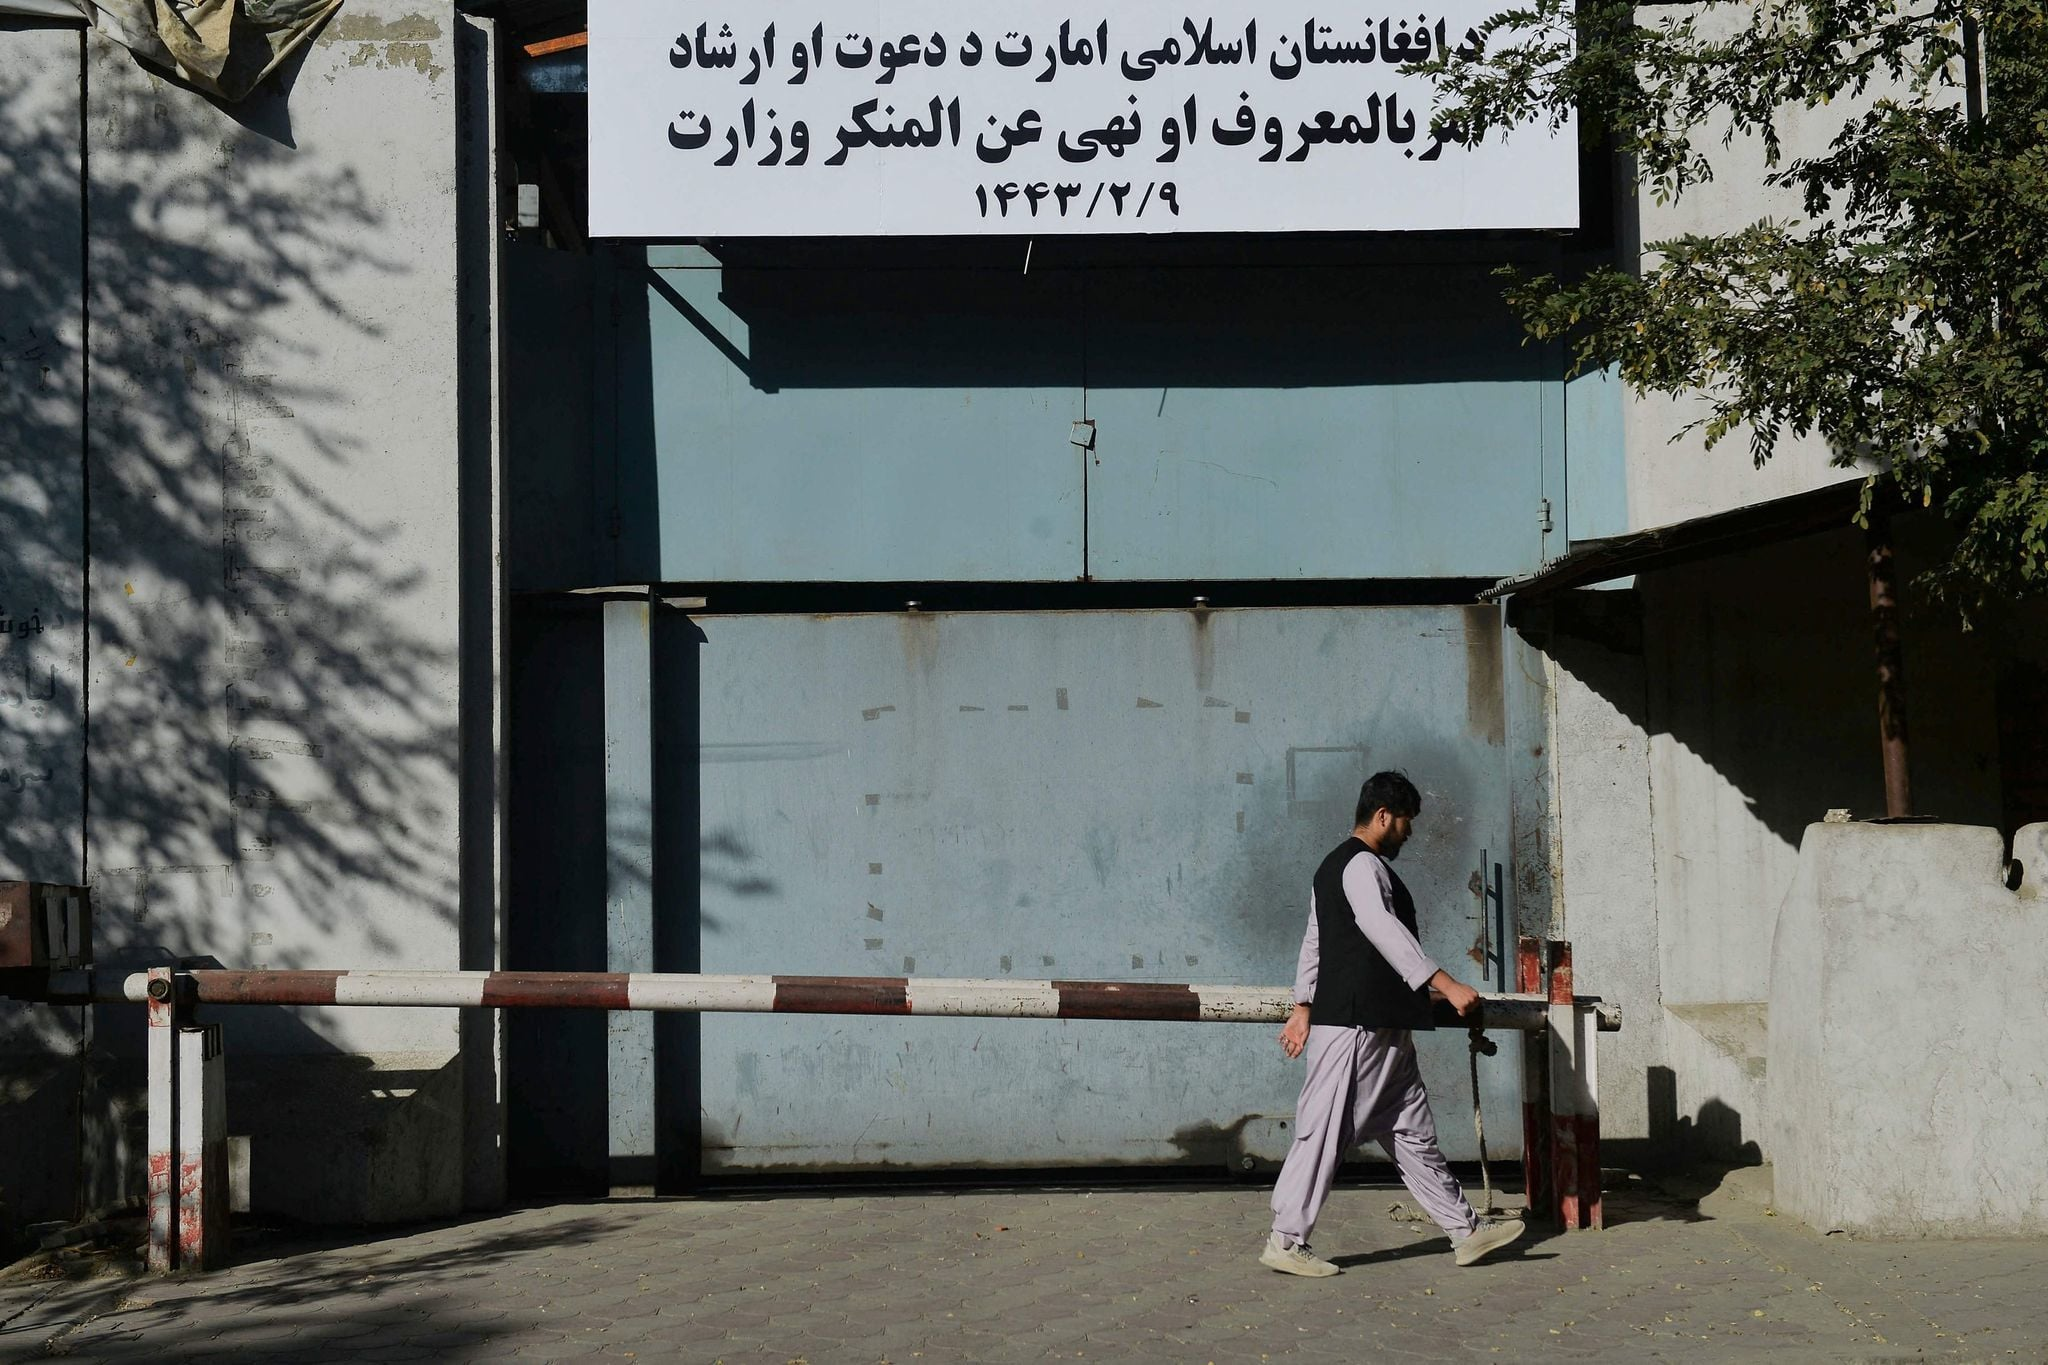 A man walks past an entrance gate of the Ministry for the Promotion of Virtue and Prevention of Vice in Kabul on September 17. — AFP